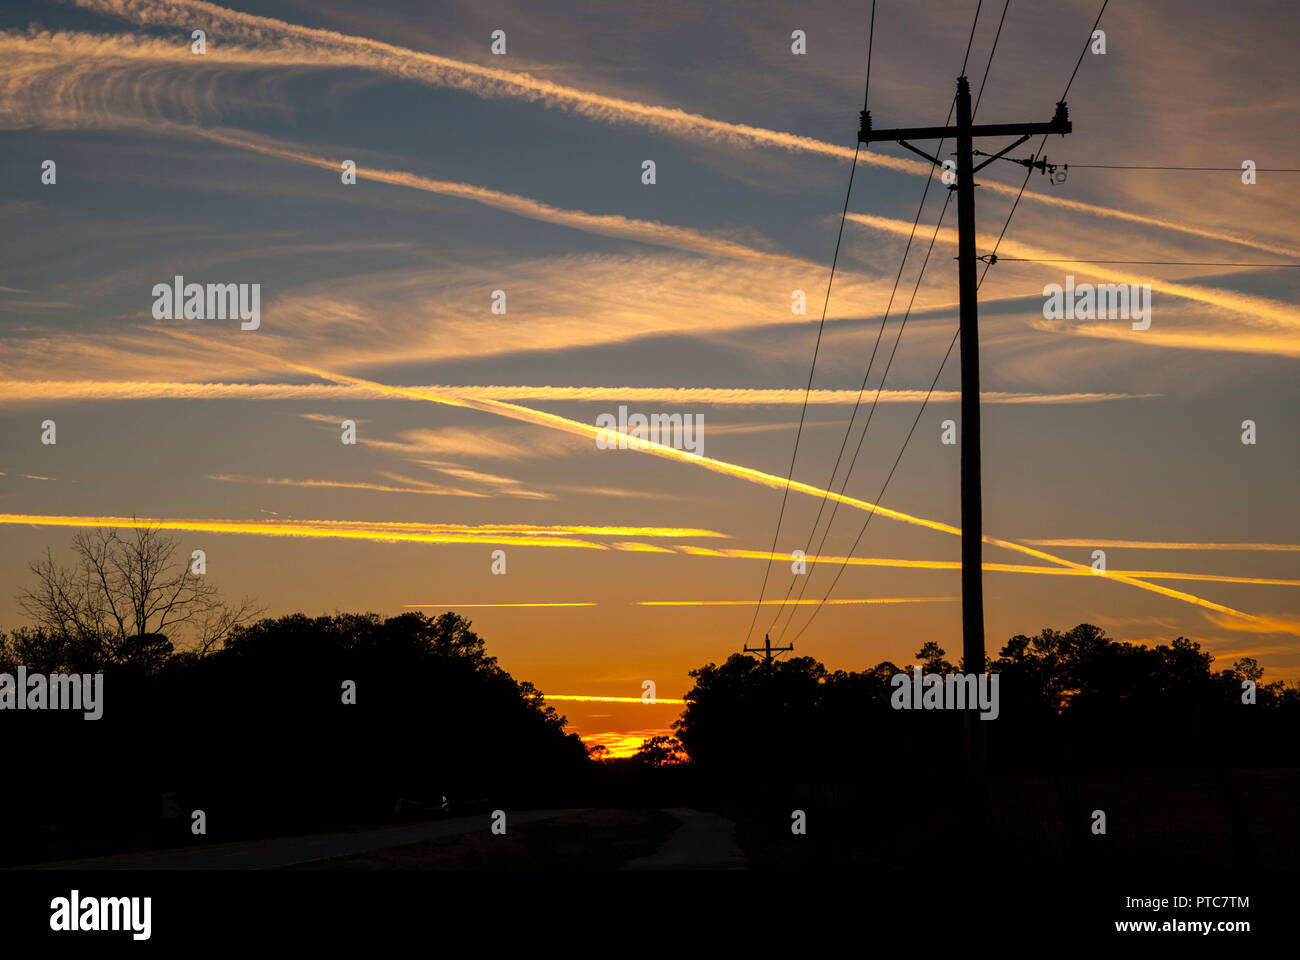 Jet contrails crisscross the skies at sunset in North Central Florida. Stock Photo